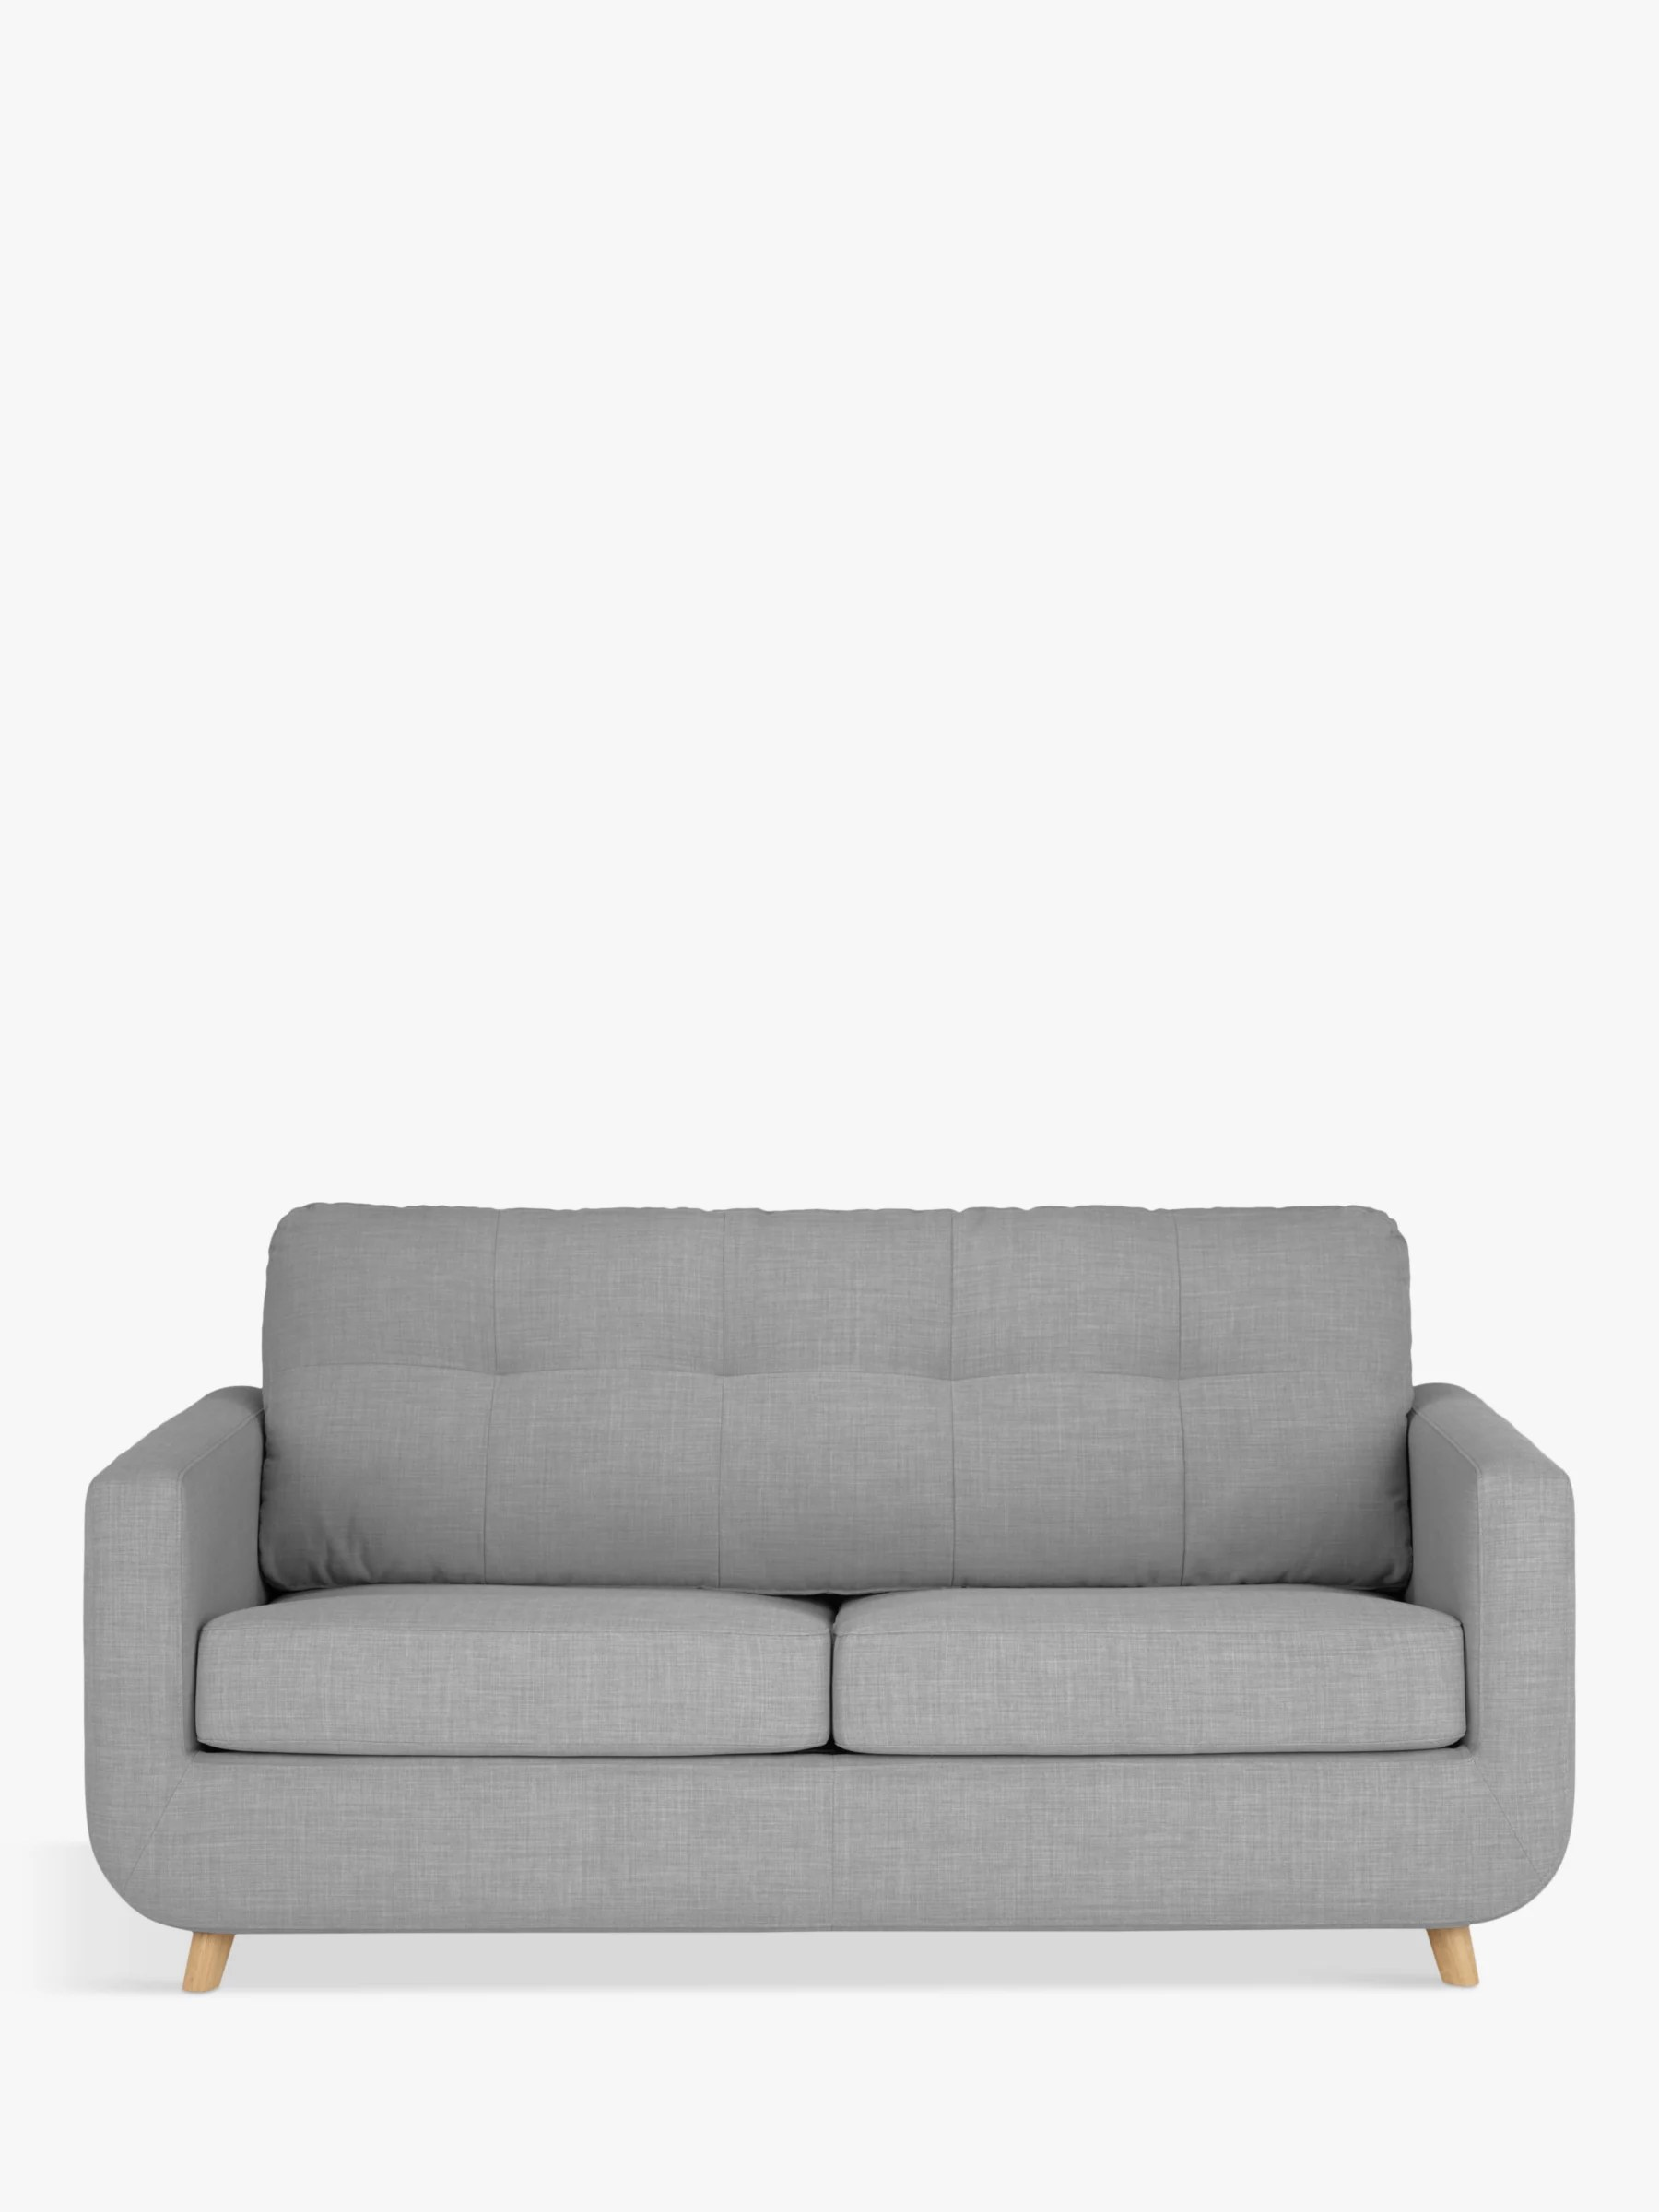 Habitat Rupert Sofa Review 2 Seater Sofa Bed Powered Store Powered Store